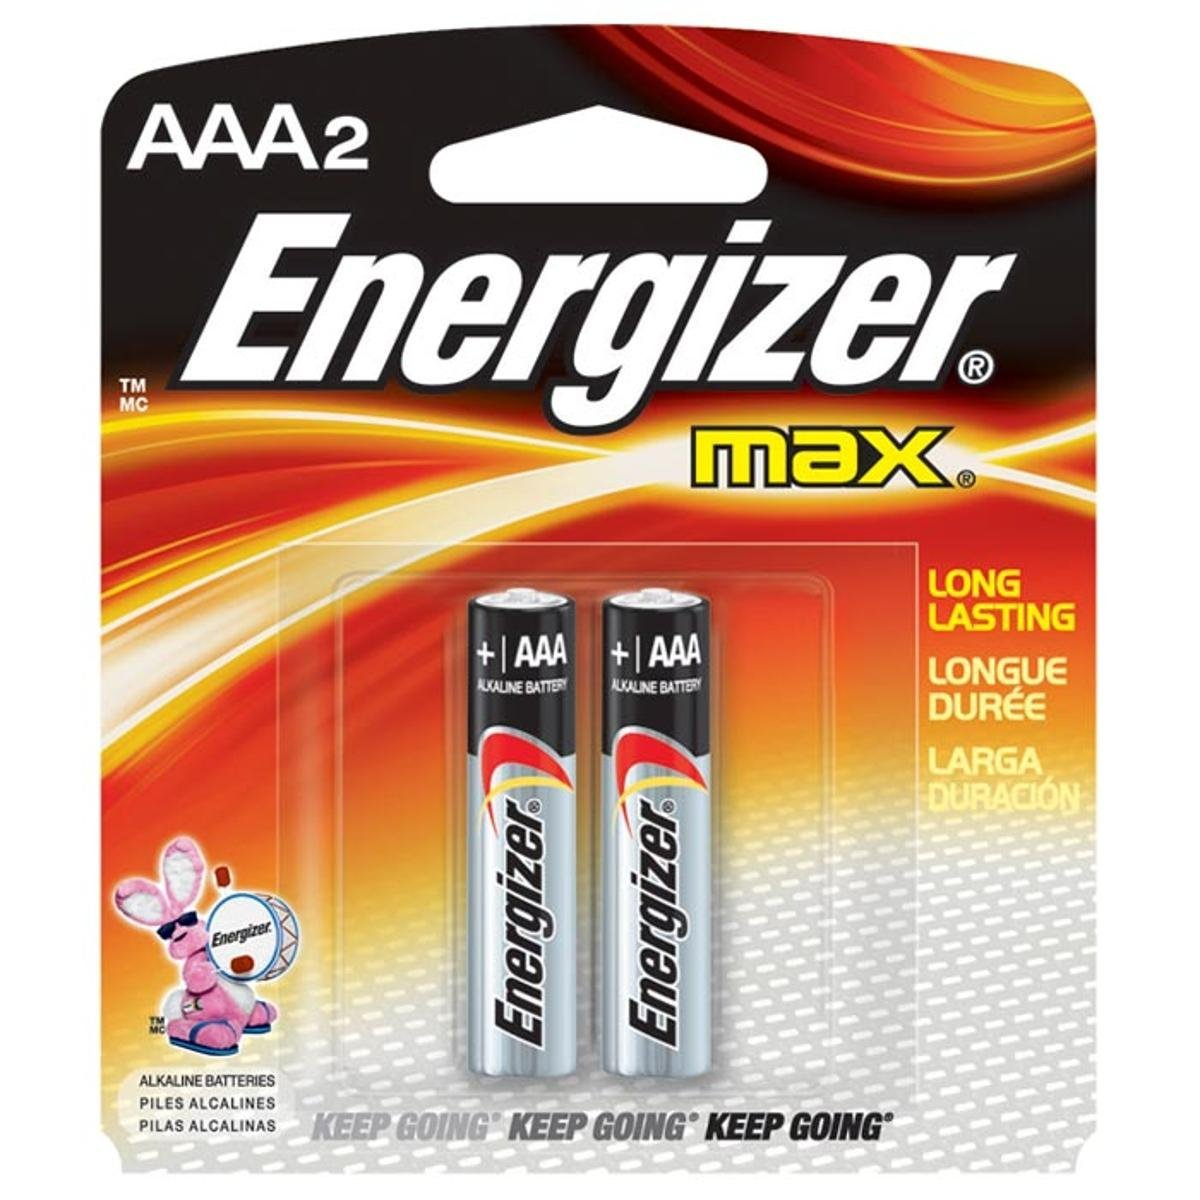 Energizer Max E92BP2 AAA 1.5V Alkaline Battery with Power Seal Technology (box/20pkt)